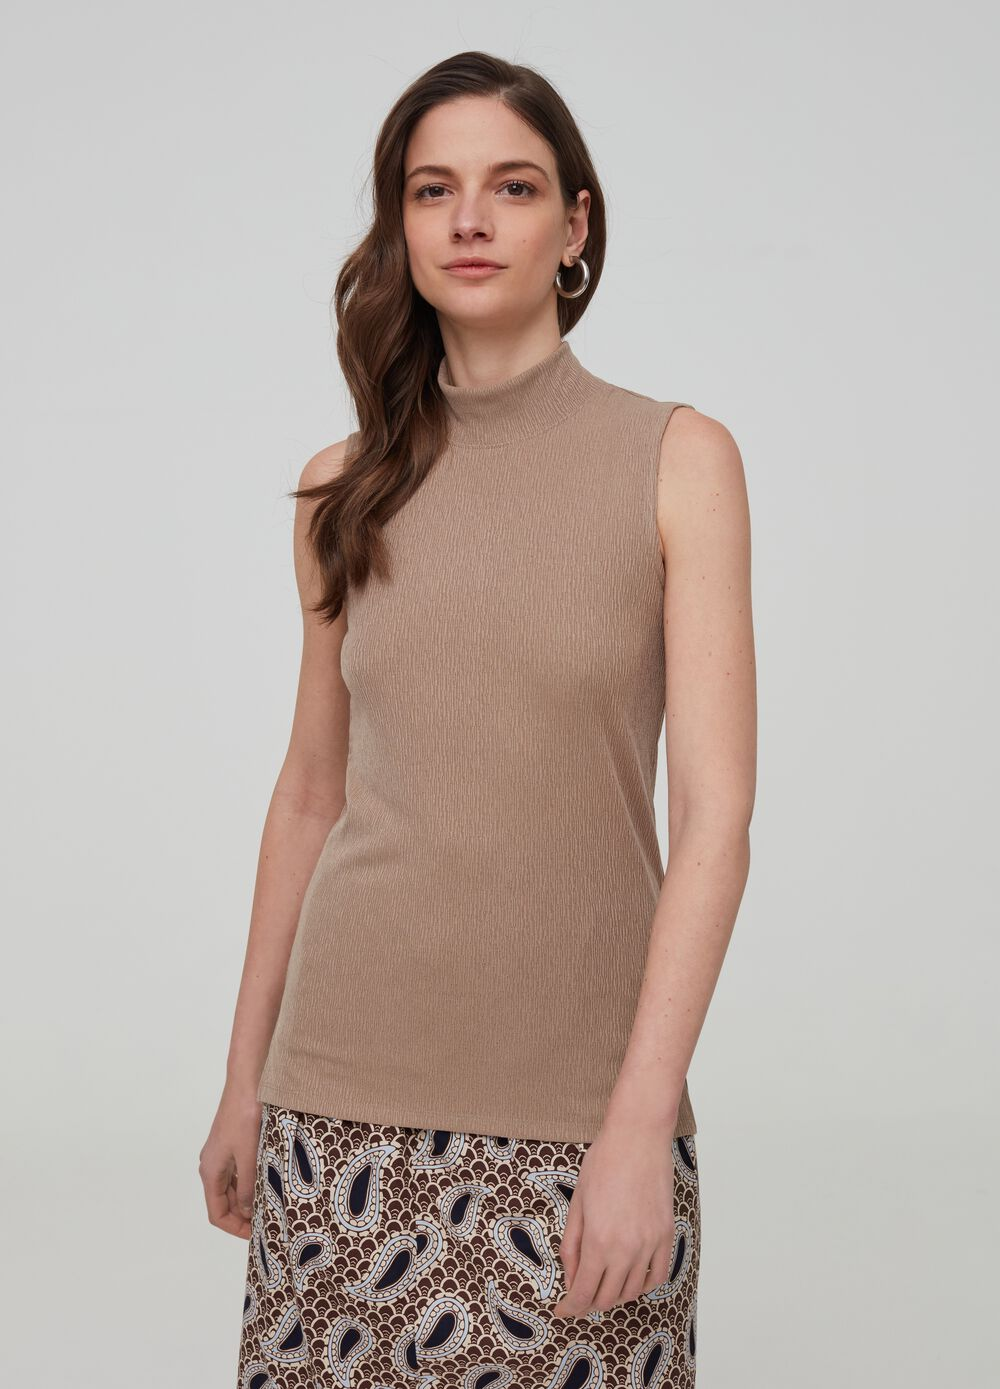 Sleeveless top with high neck